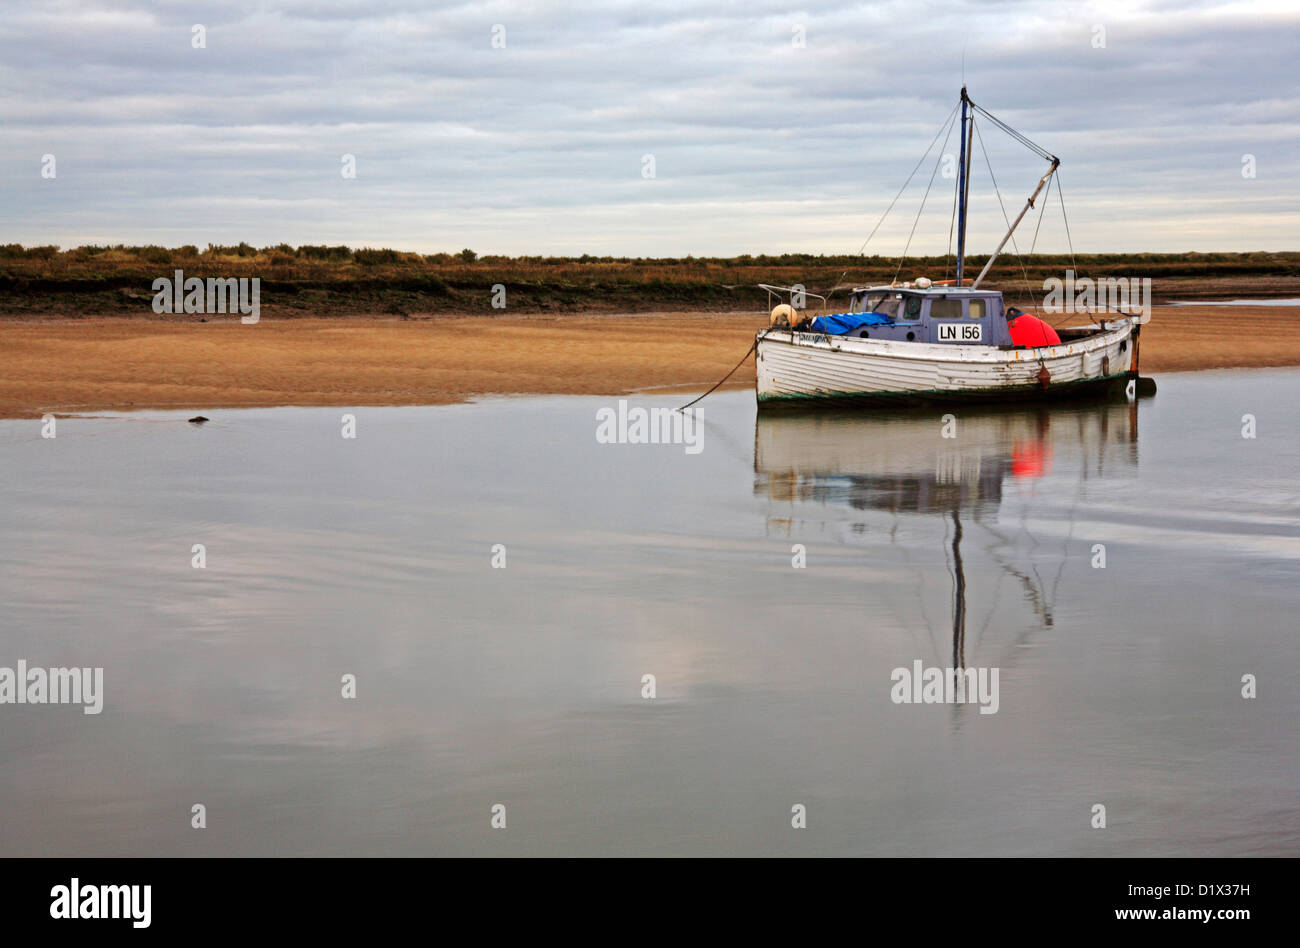 An inshore fishing boat with reflection anchored at Burnham Overy Staithe, Norfolk, England, United Kingdom. - Stock Image